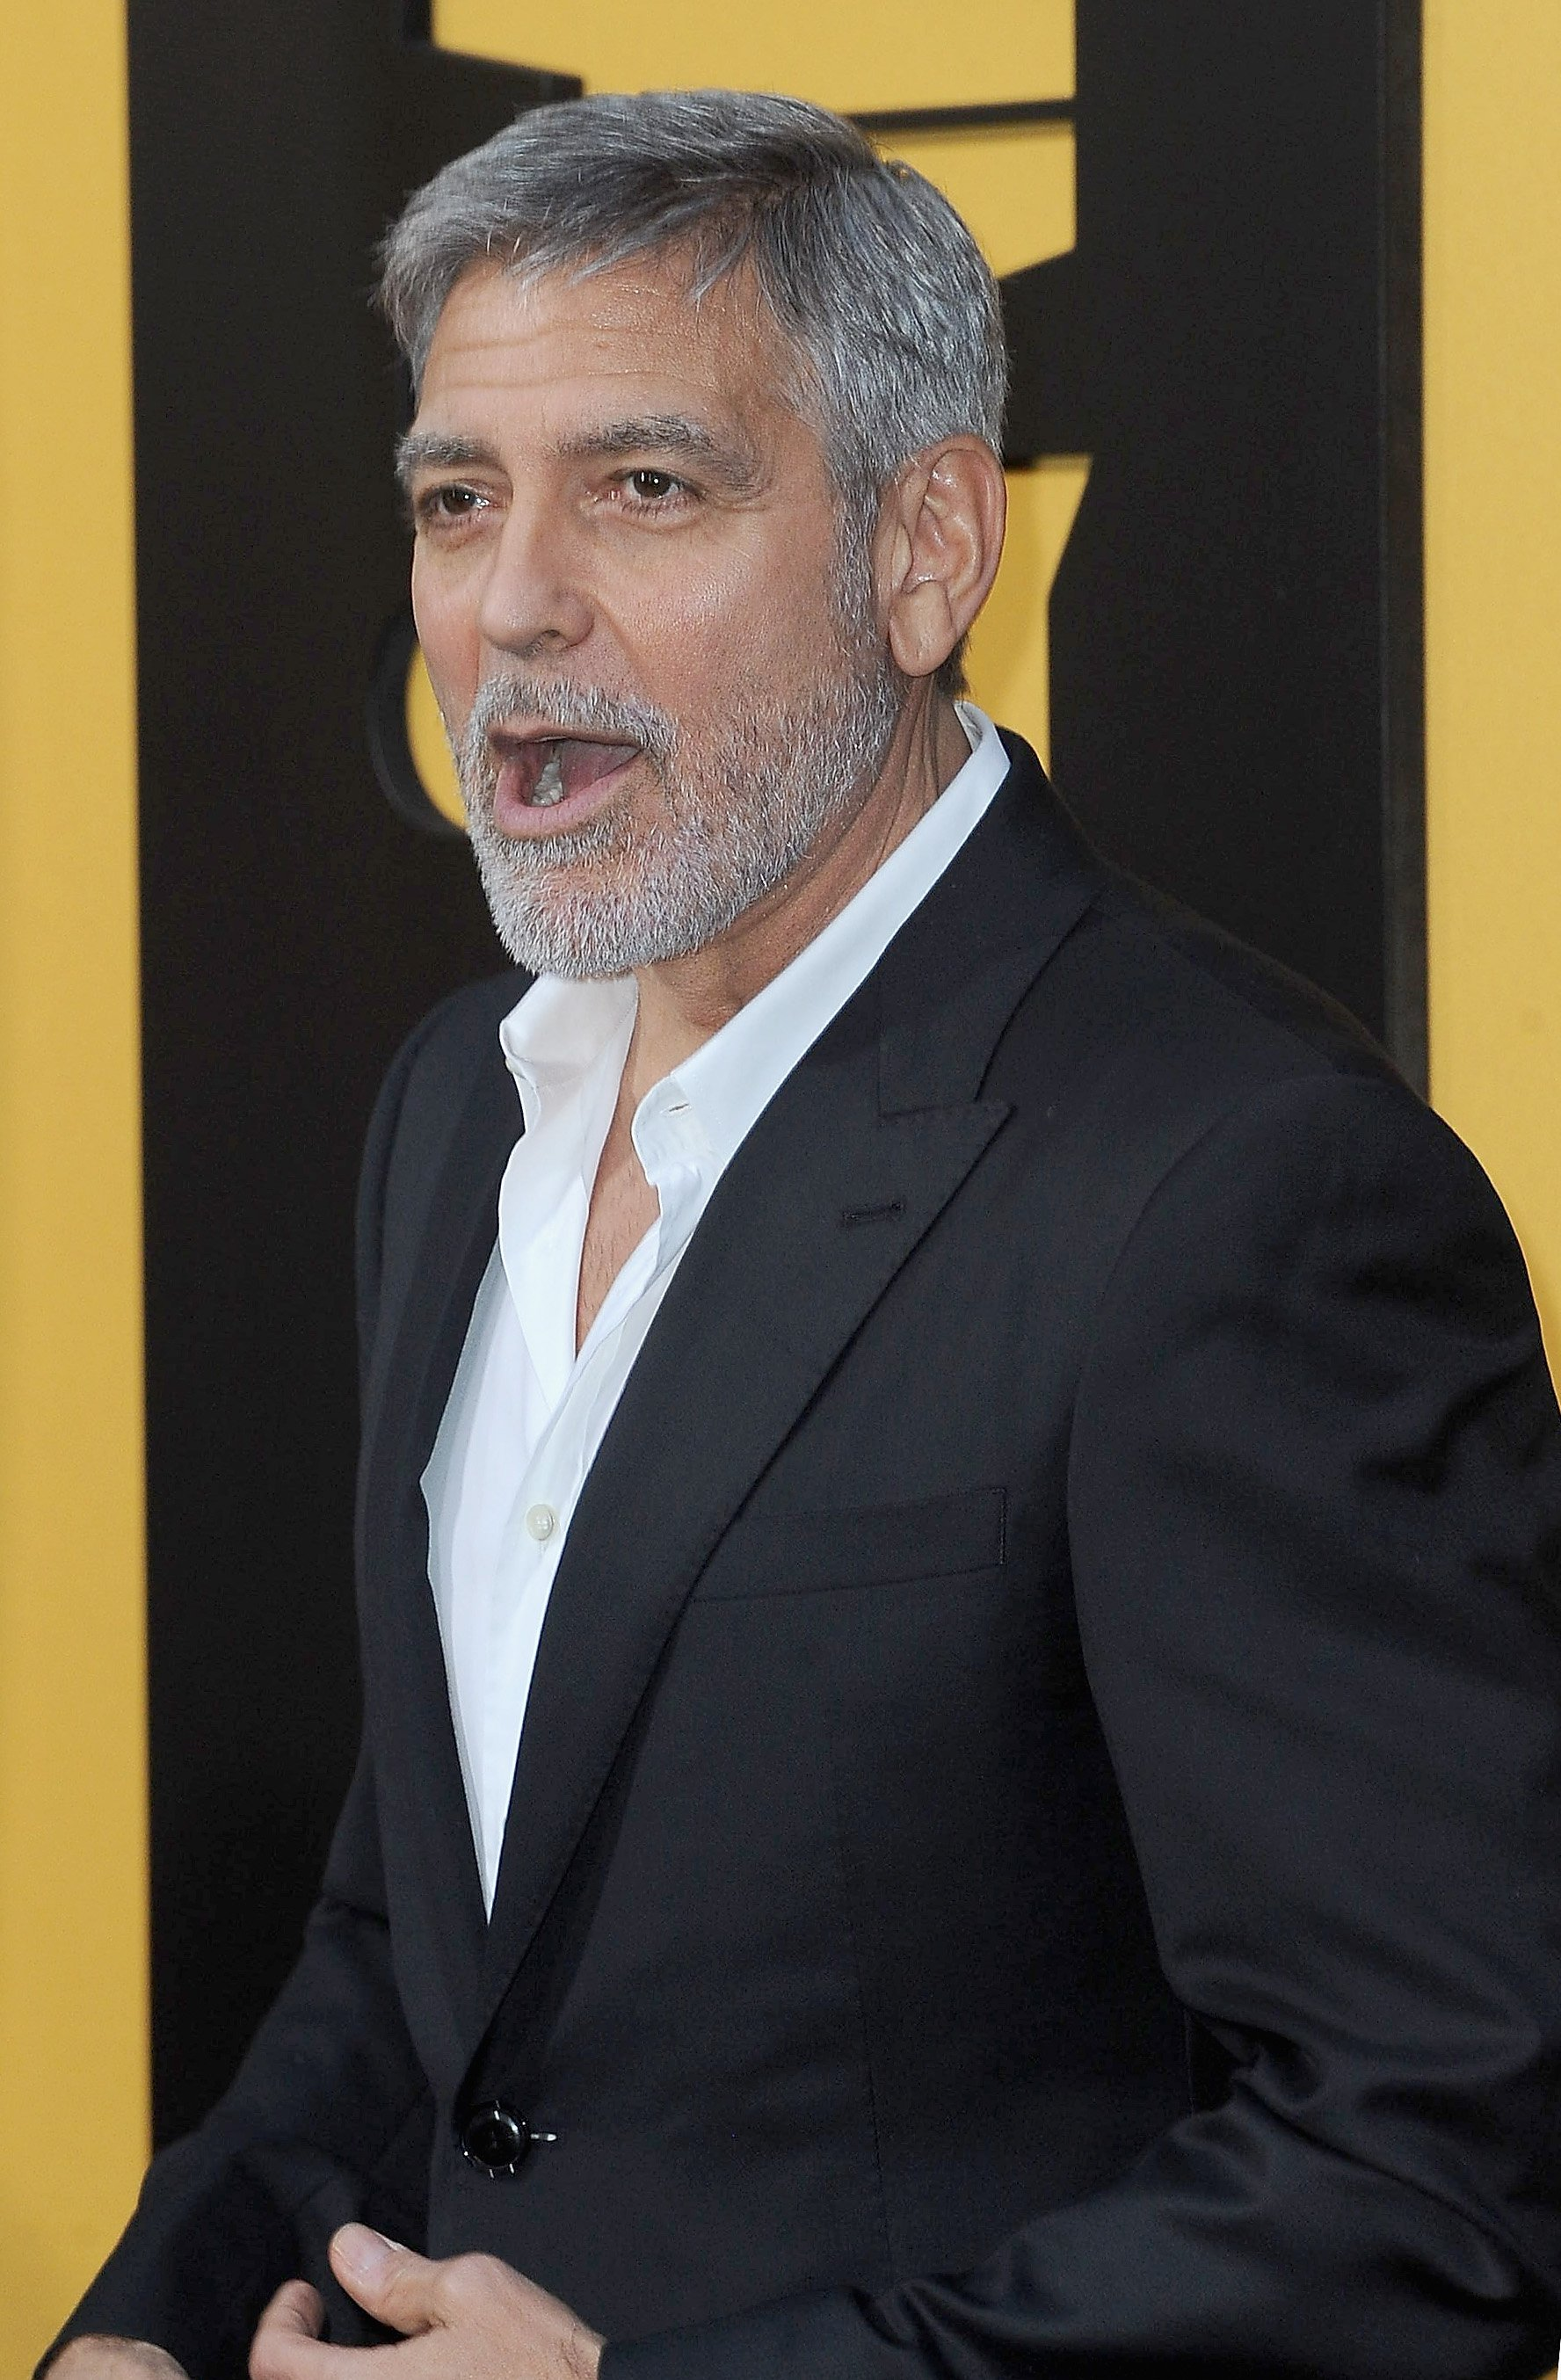 """George Clooney attends the premiere of """"Catch-22"""" on May 7, 2019 